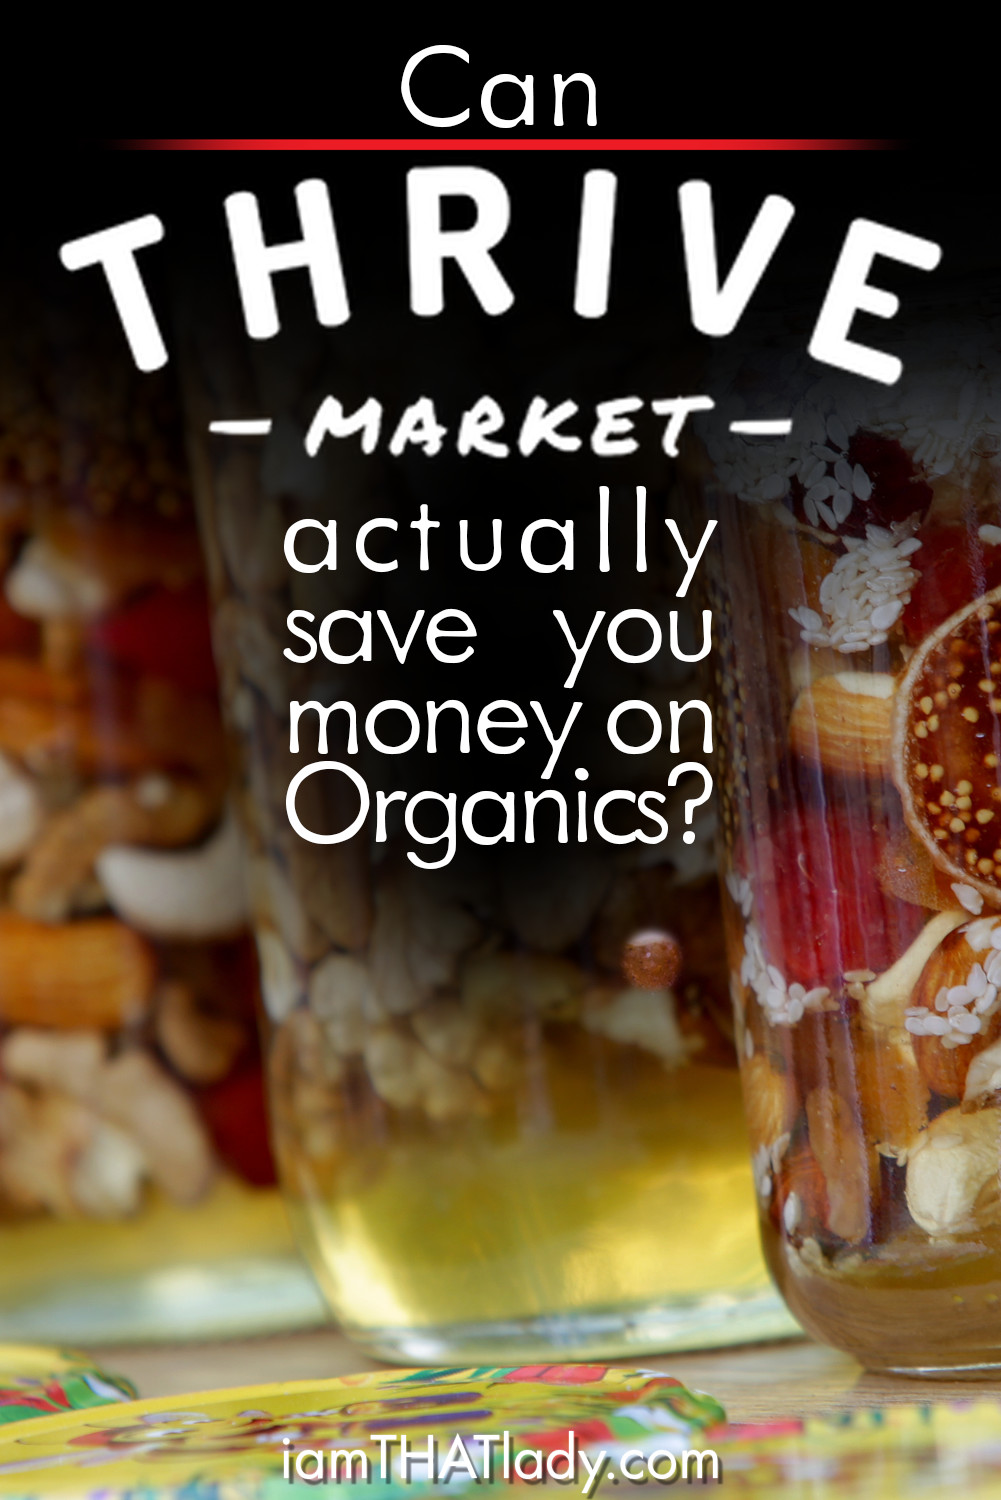 Have you checked out Thrive Market? Find out if they can actually save you money on organic foods!